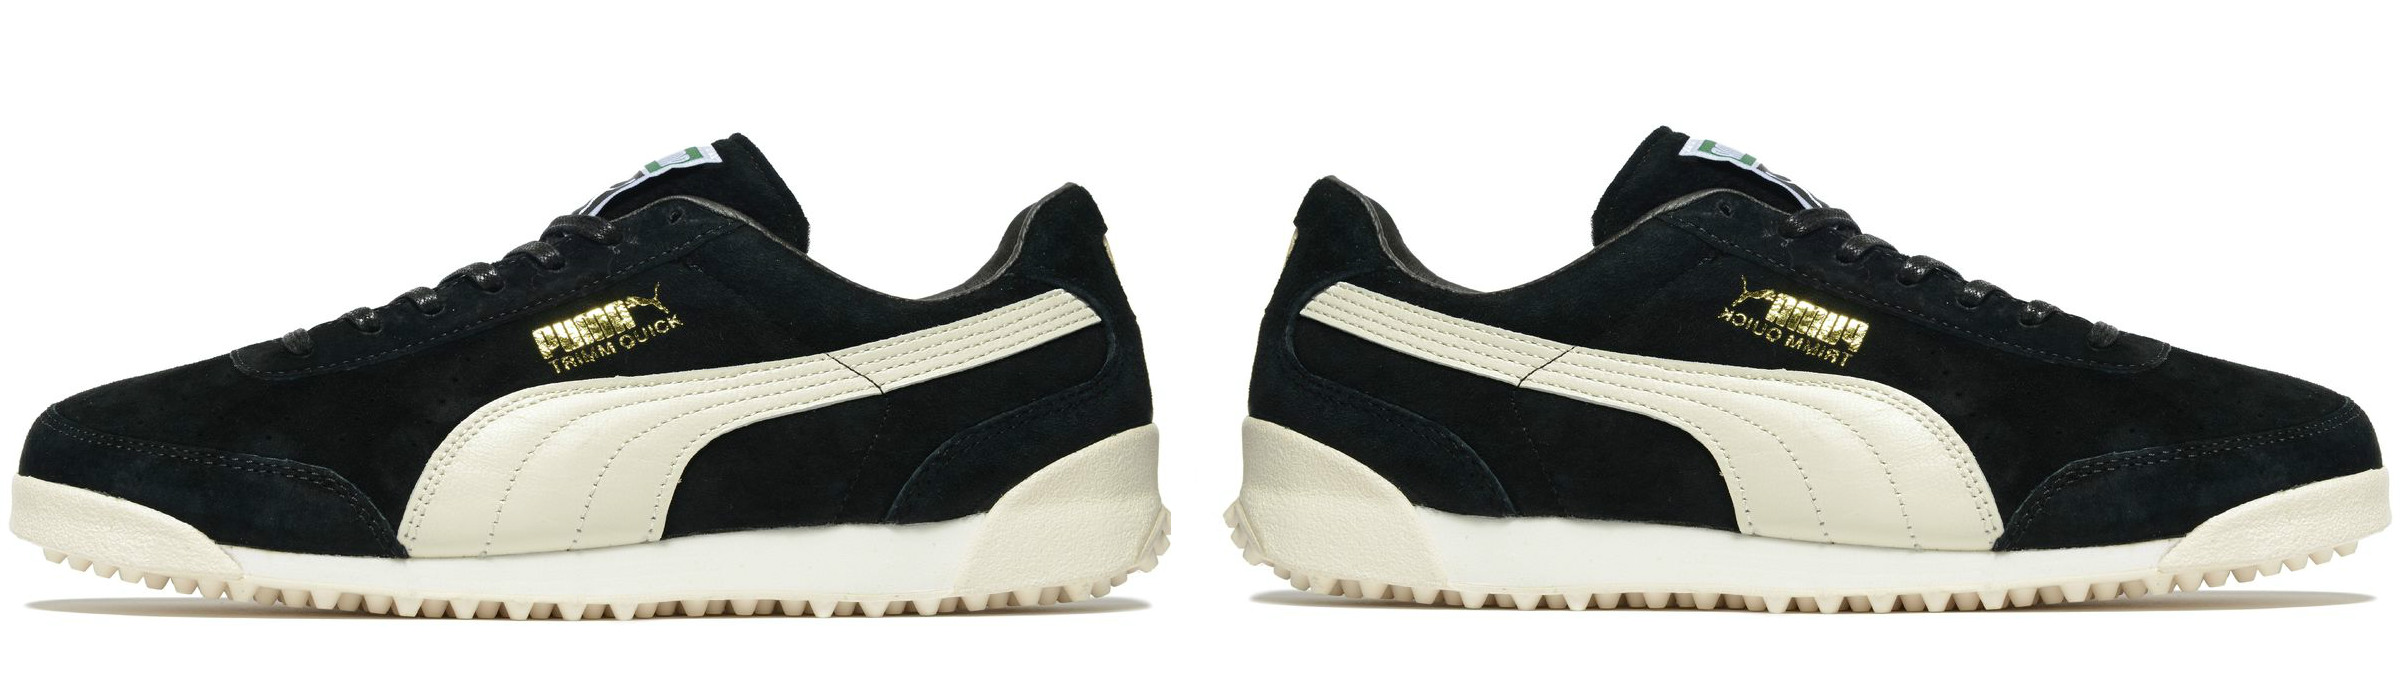 Puma Trimm Quick Black Cream White Full